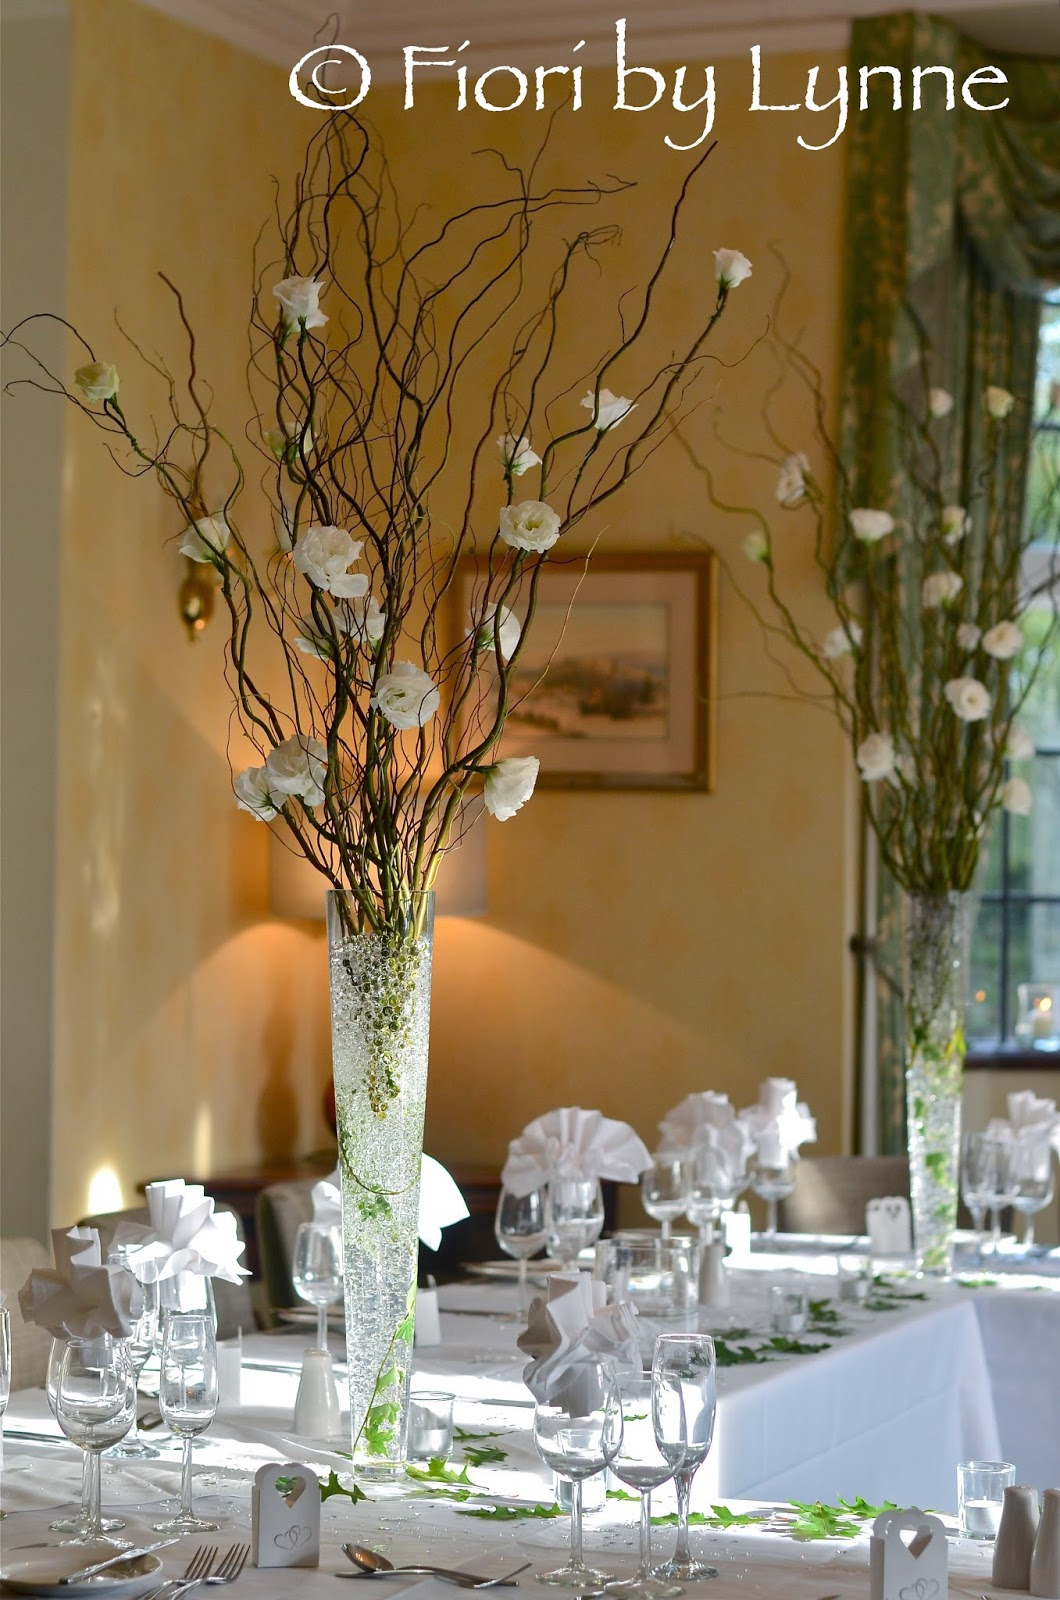 Wedding flowers blog 2014 tall vase of curly twigs and lisianthus flowers the table below is decorated with massed tea lights and scattered oak leaves to create a wonderfully reviewsmspy